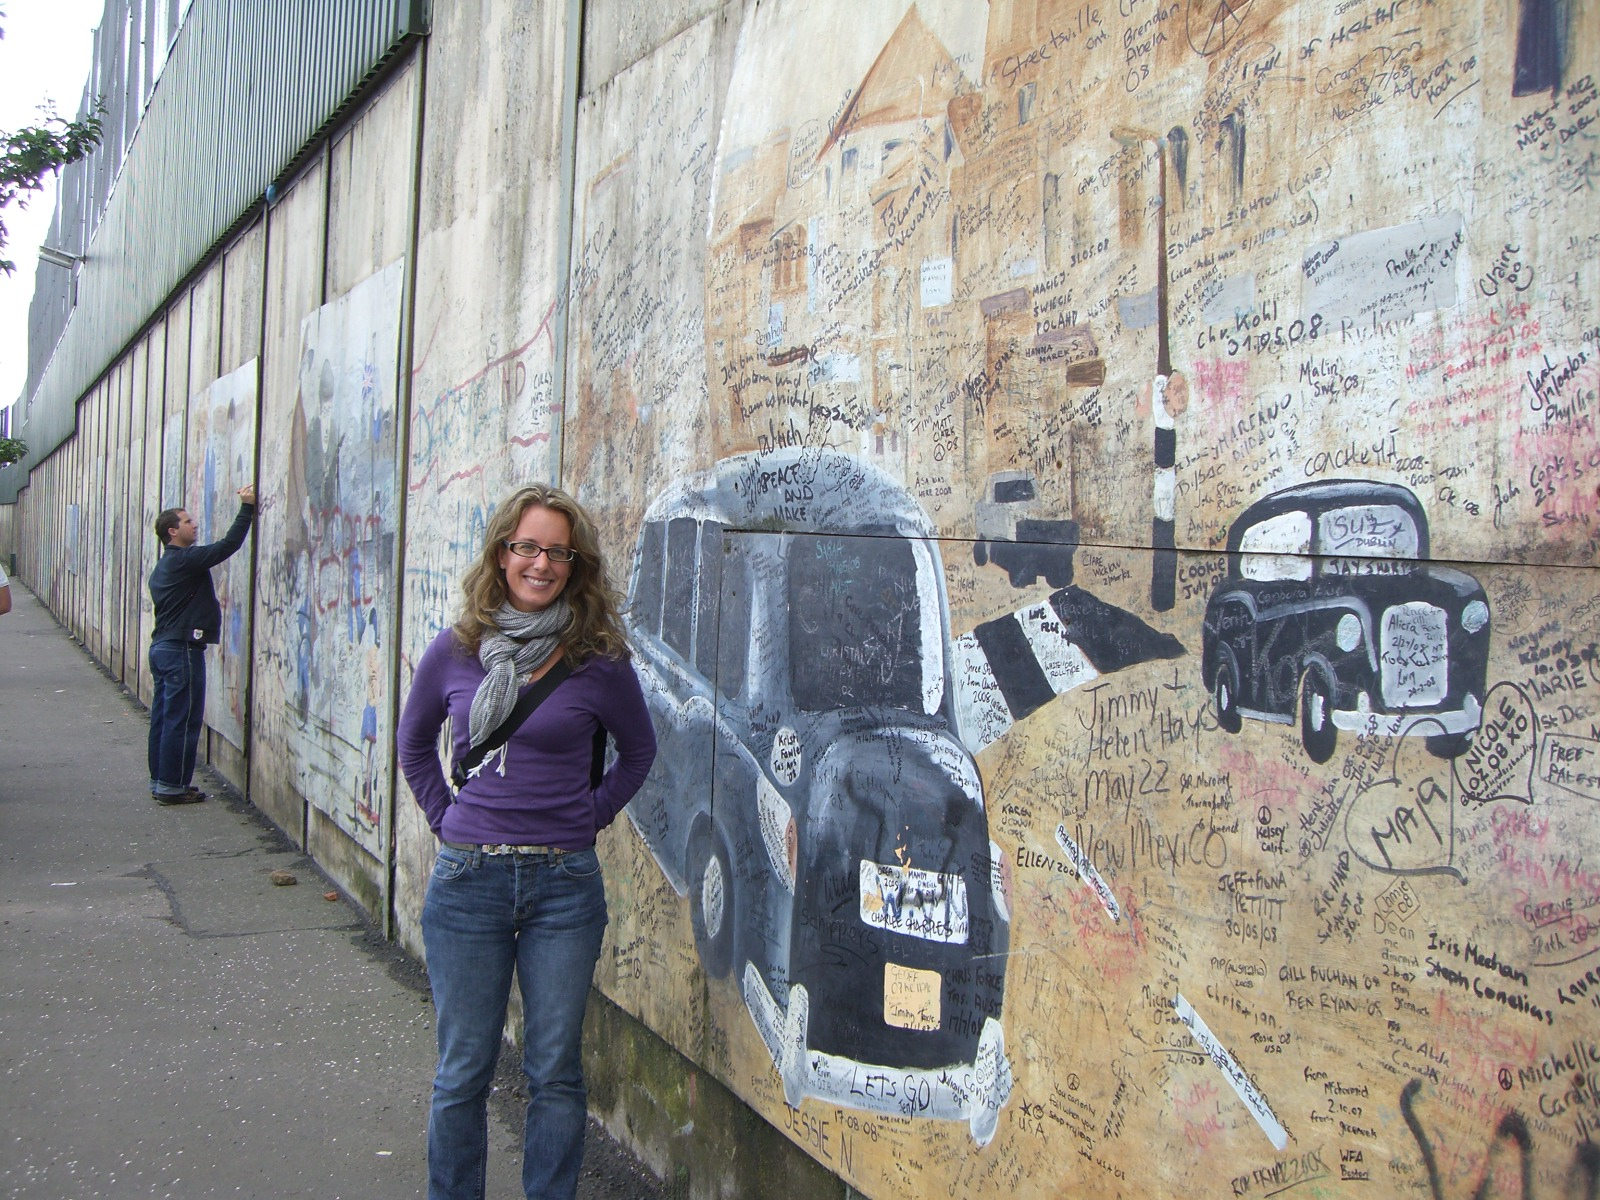 By the Peace Wall (three stories high, and built to keep the Protestants and Catholics separate) in Belfast, Ireland